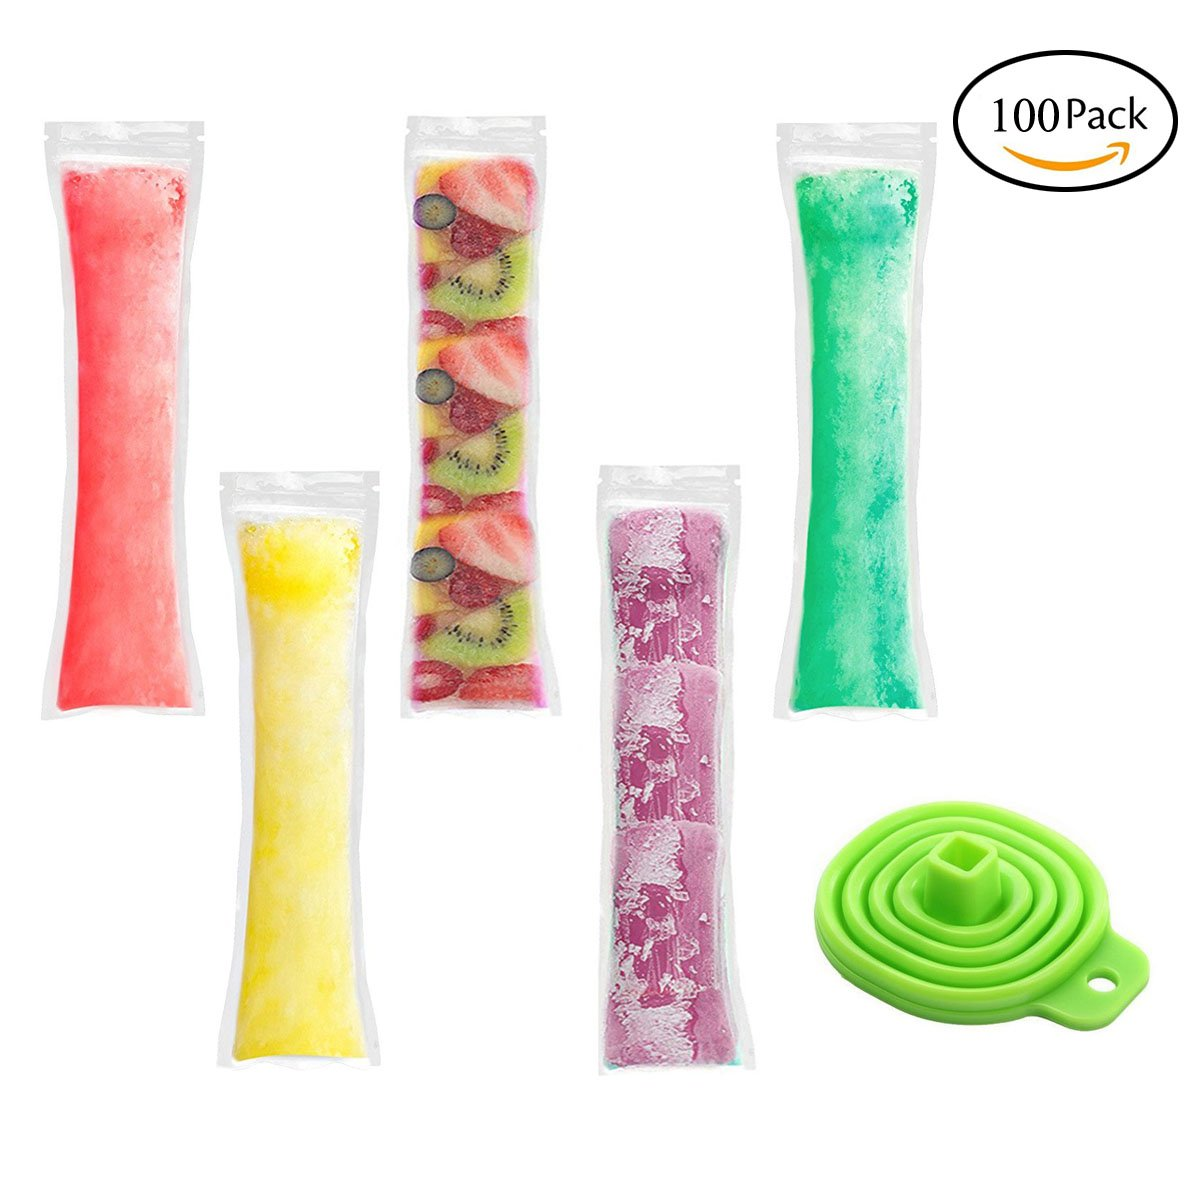 """SBOZ 100 Pack Popsicle Mold Bags With Zip Seals, 2.36""""x8.66"""" FDA Approved BPA Free Disposable Ice Pop Pouches for Healthy Yogurt Sticks/Juice/Fruit Smoothies/Ice Candy, Comes with A Telescopic Funnel"""